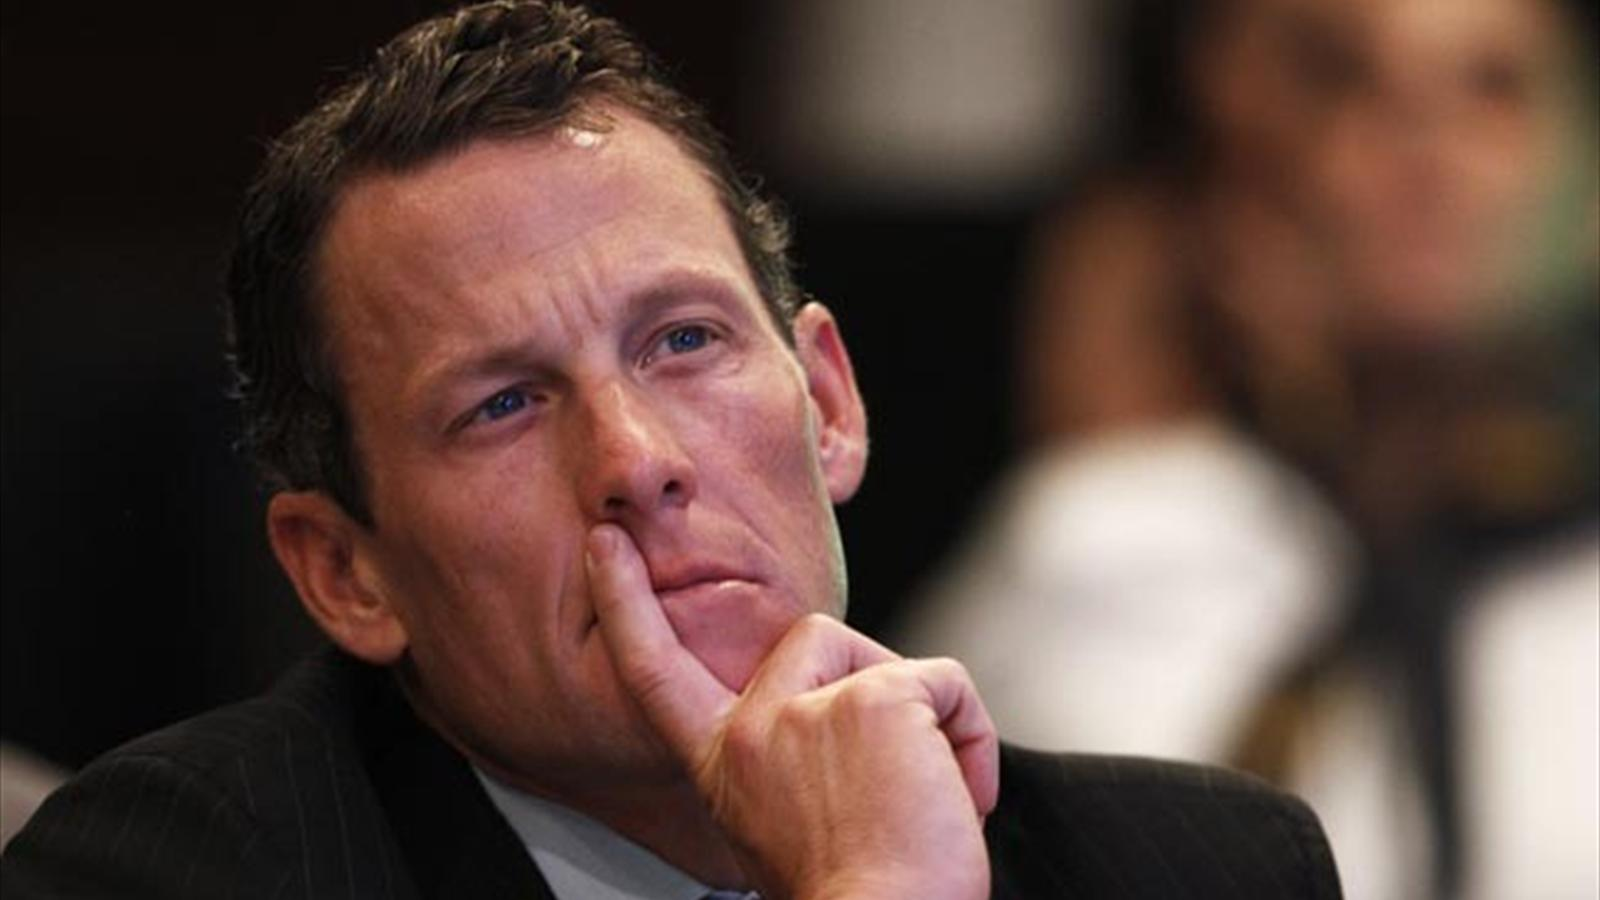 lance armstrong s doping and lying Former cyclist lance armstrong has agreed to pay the united states $5 including lying under oath about his ped use in a 2005 the us anti-doping.